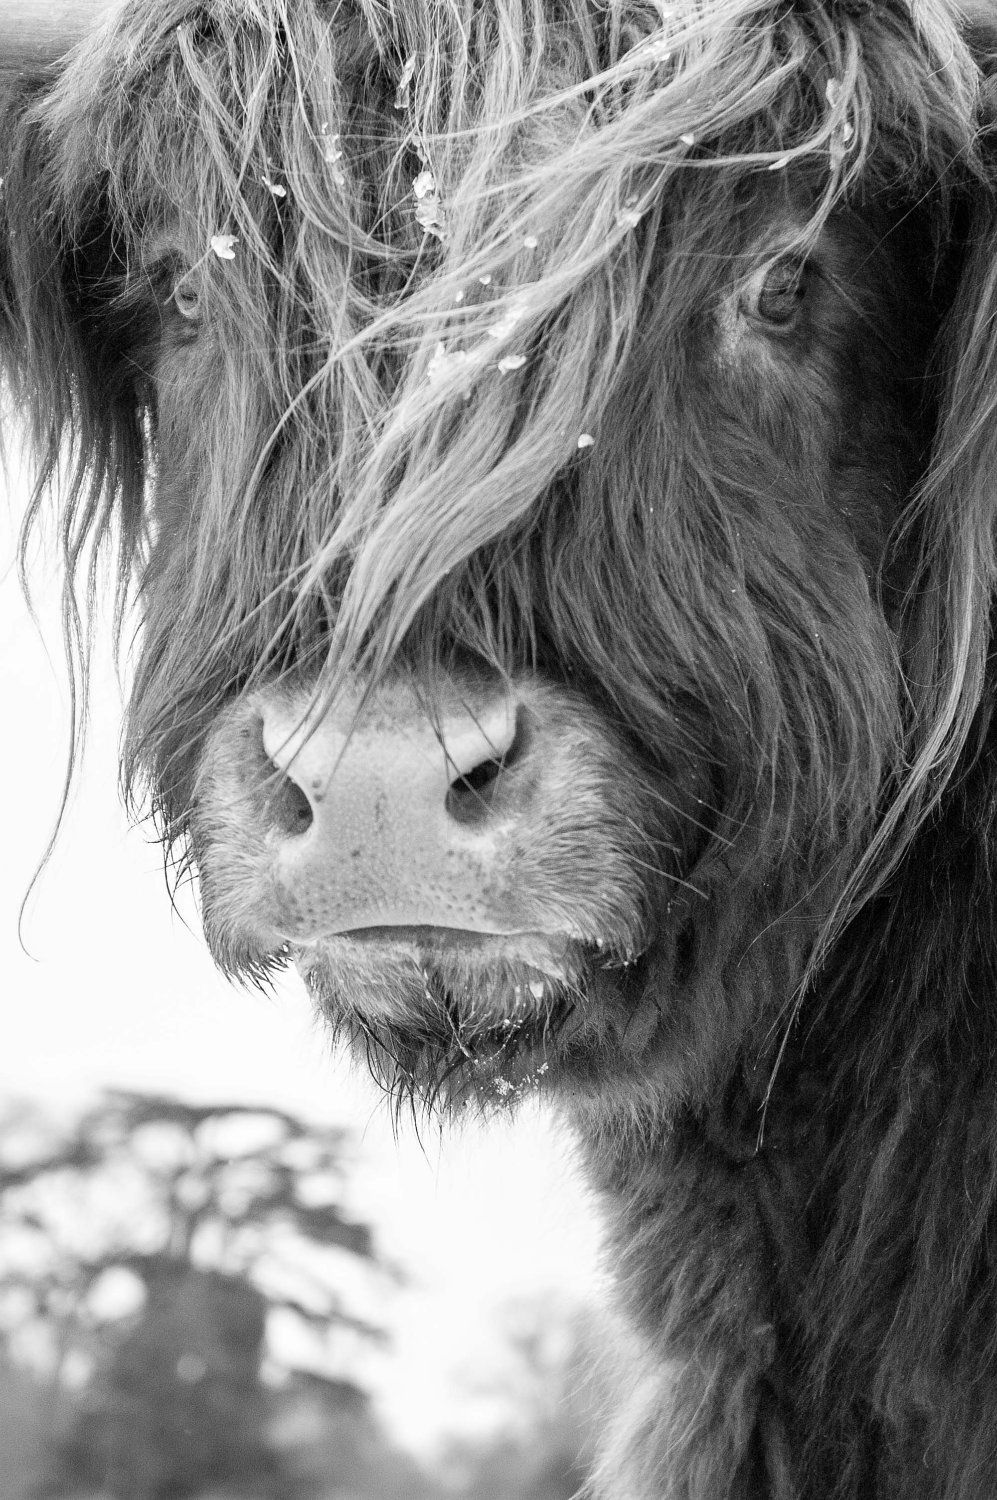 Highland Cattle 5 Fine Art Photography Cow Nature Etsy Animals Highland Cattle Animals Beautiful